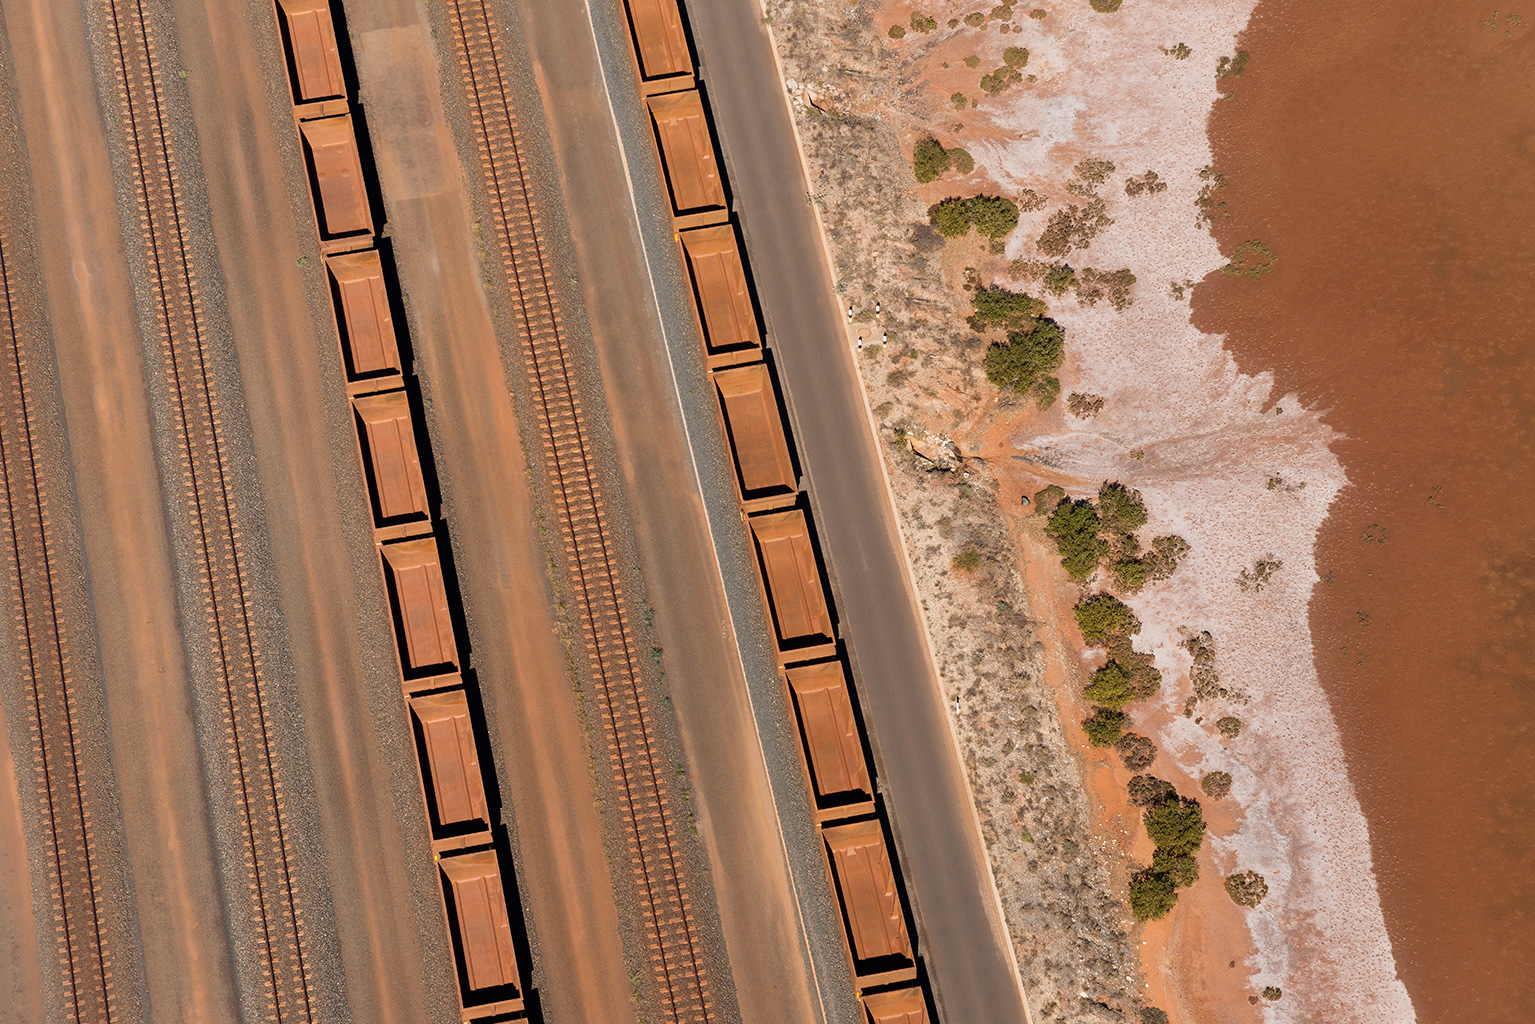 140613-133-Empty-Ore-Cars-Aerial